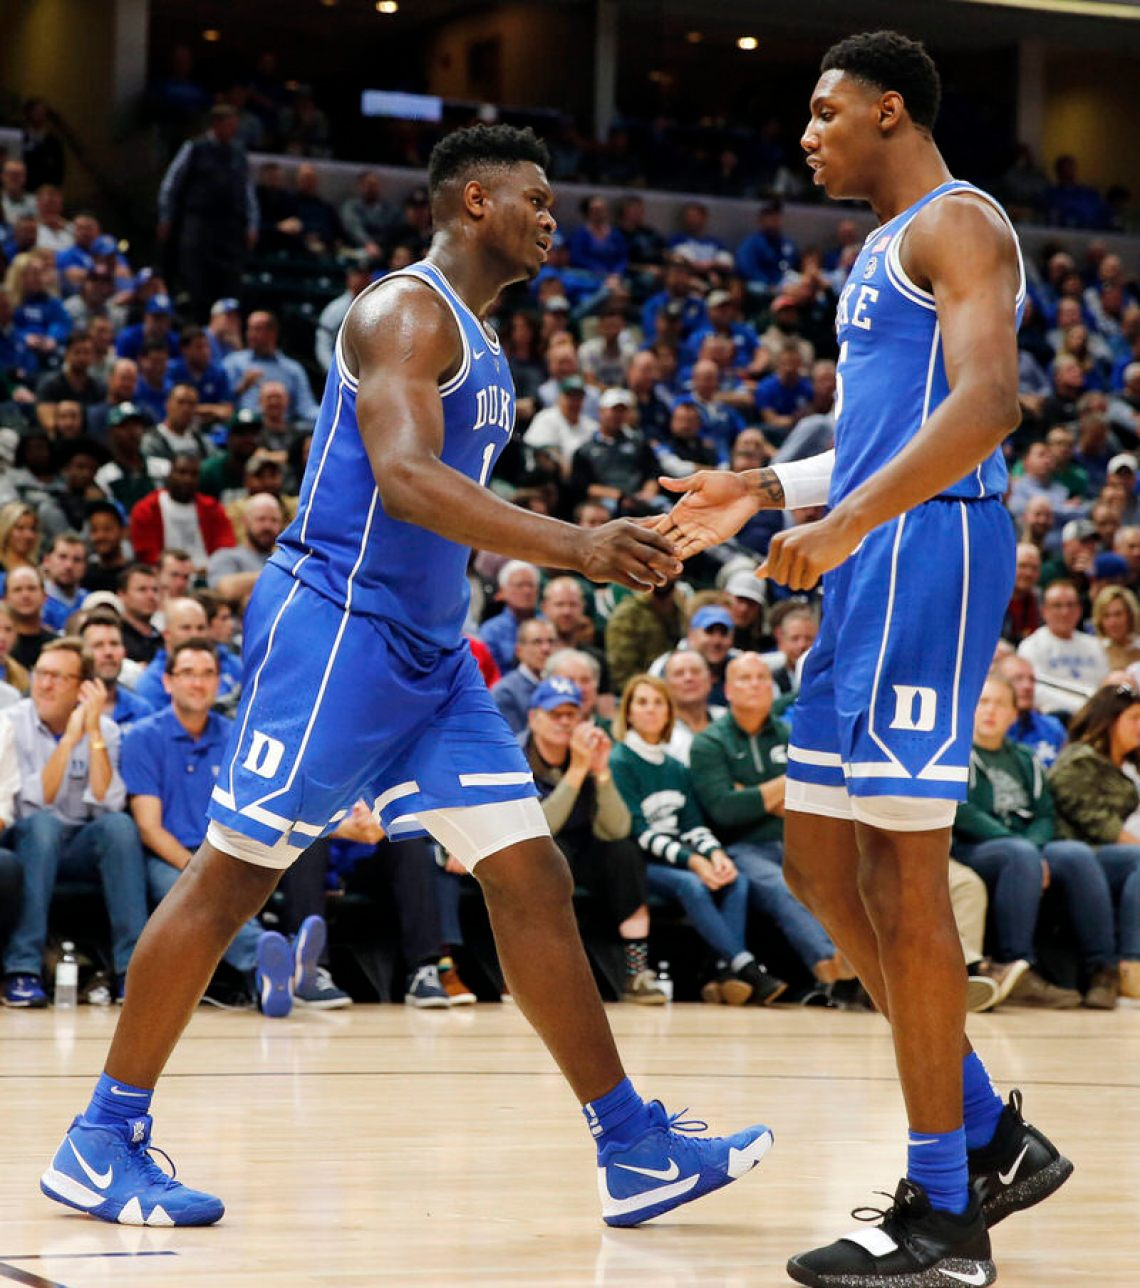 5d4a978f3ae3 ... Zion Williamson in the Nike Kyrie 4 Duke PE (photo by Brian  Spurlock-USA TODAY Sports) ...